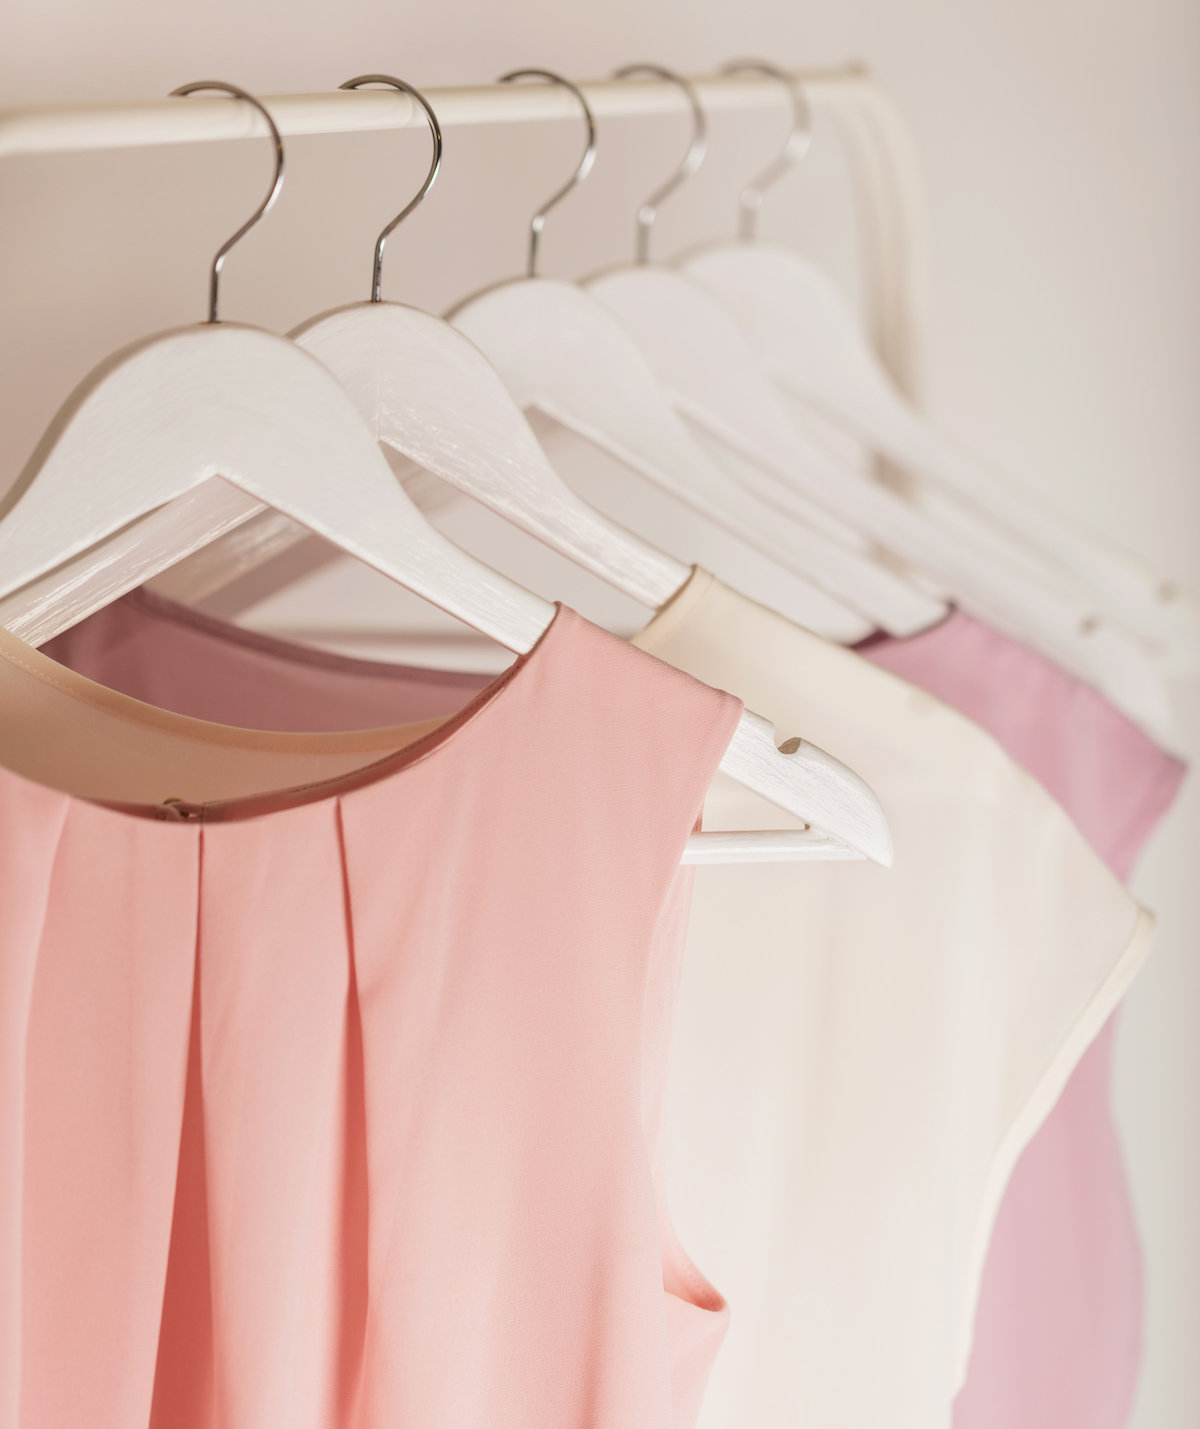 This 10-Minute Trick Made My Closet Look More Organized (Without Actually Getting Rid of Anything)